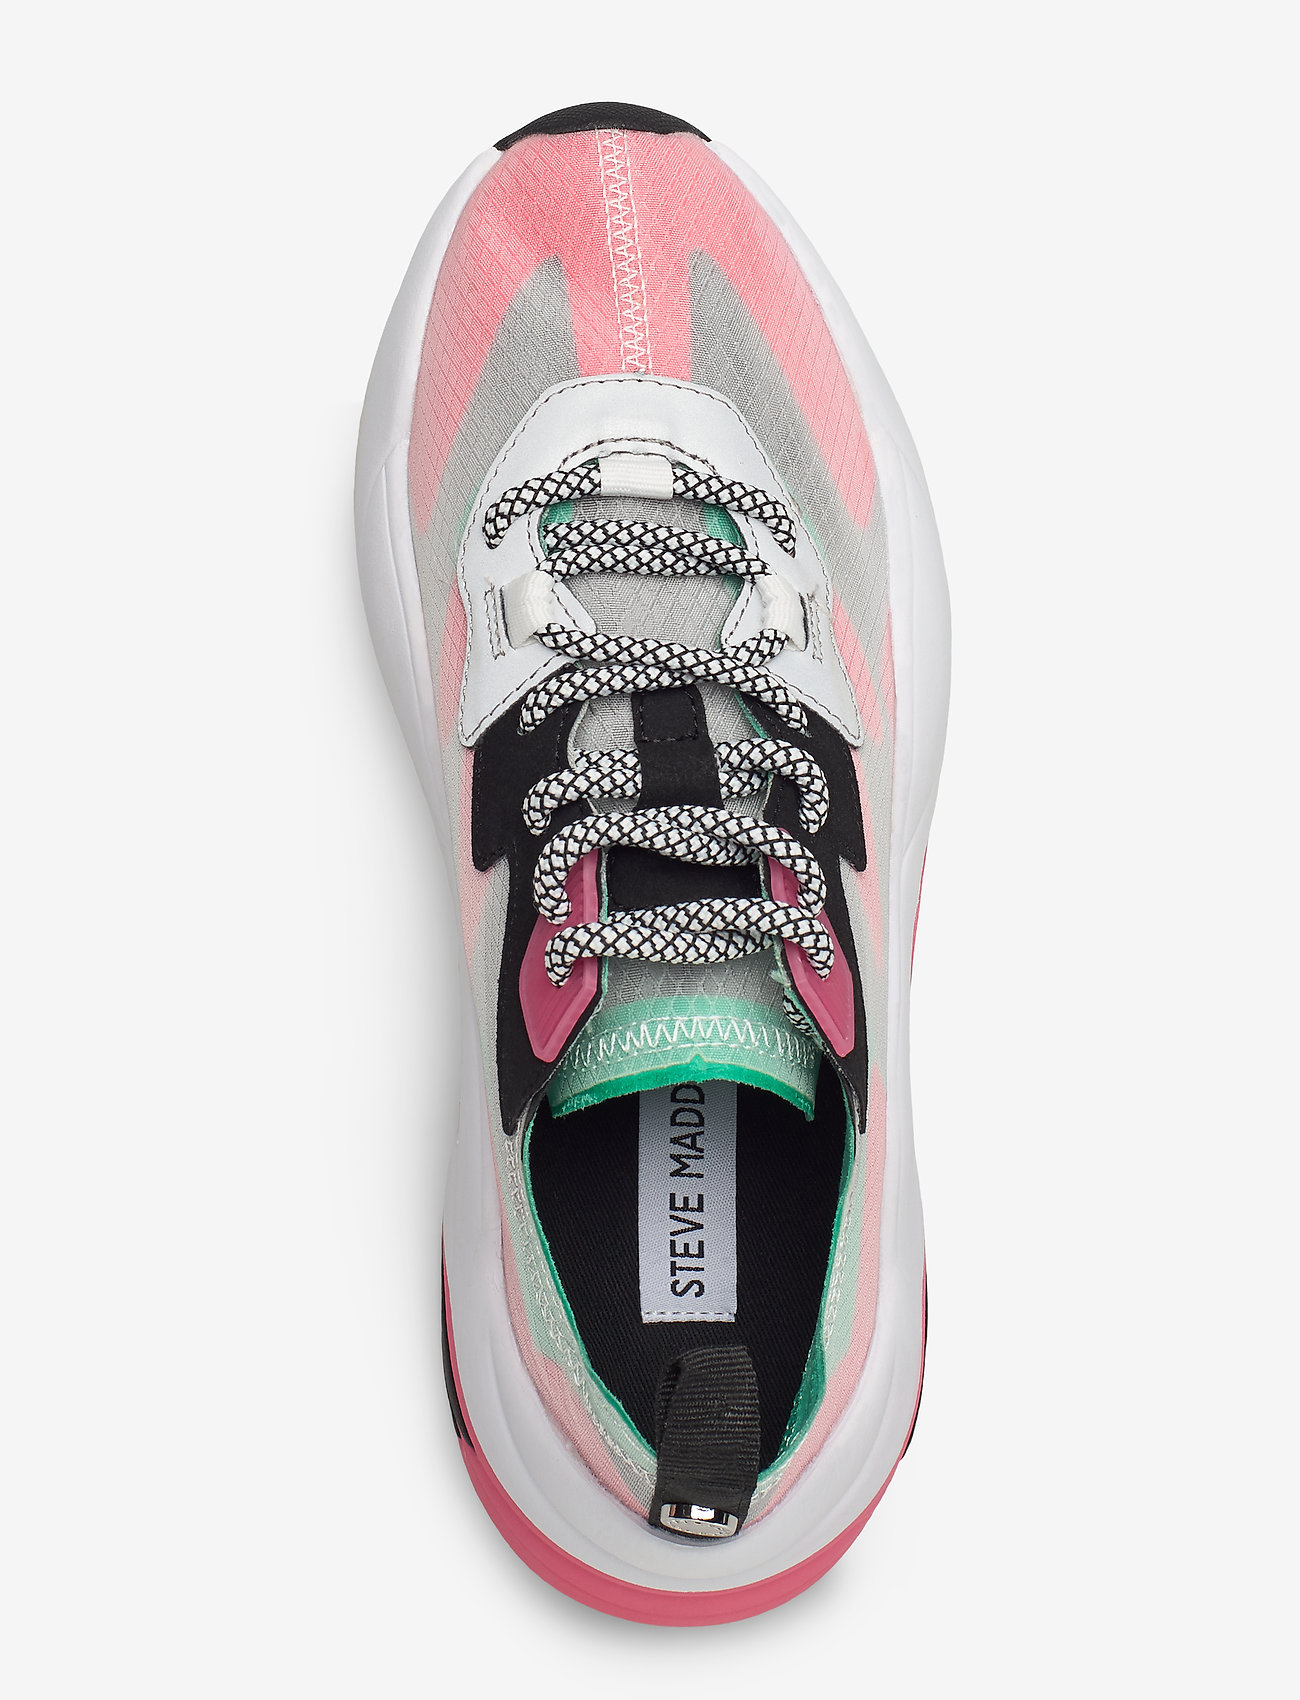 Charged Sneaker (Red Multi) - Steve Madden